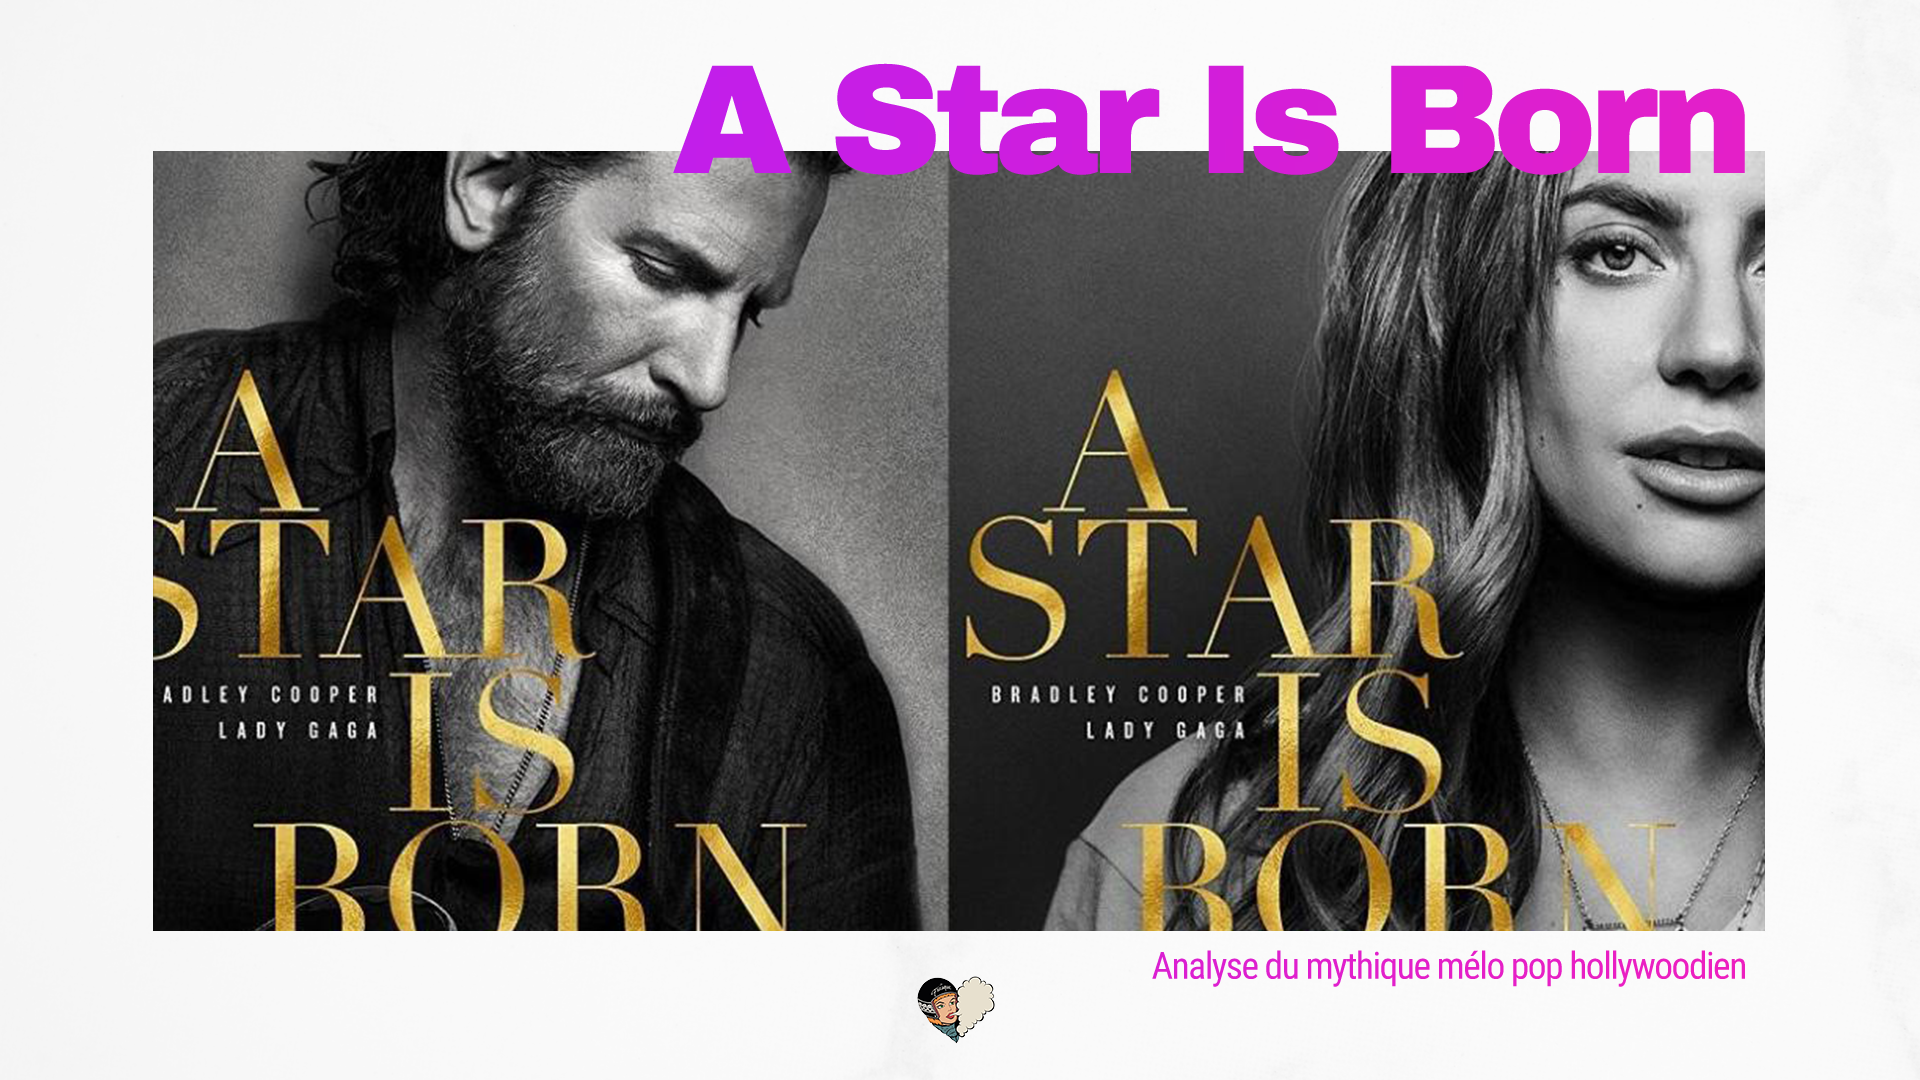 CINEMA - A Star Is Born : analyse du 3ème remake du mythique mélo pop hollywoodien